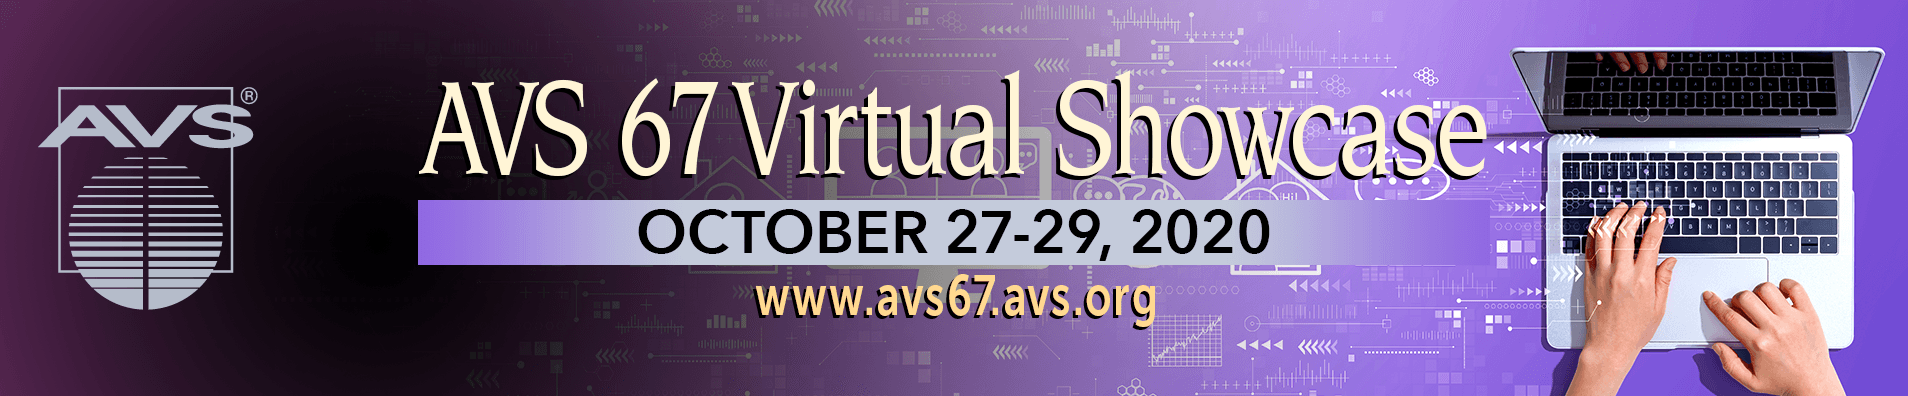 AVS 67 Virtual Showcase